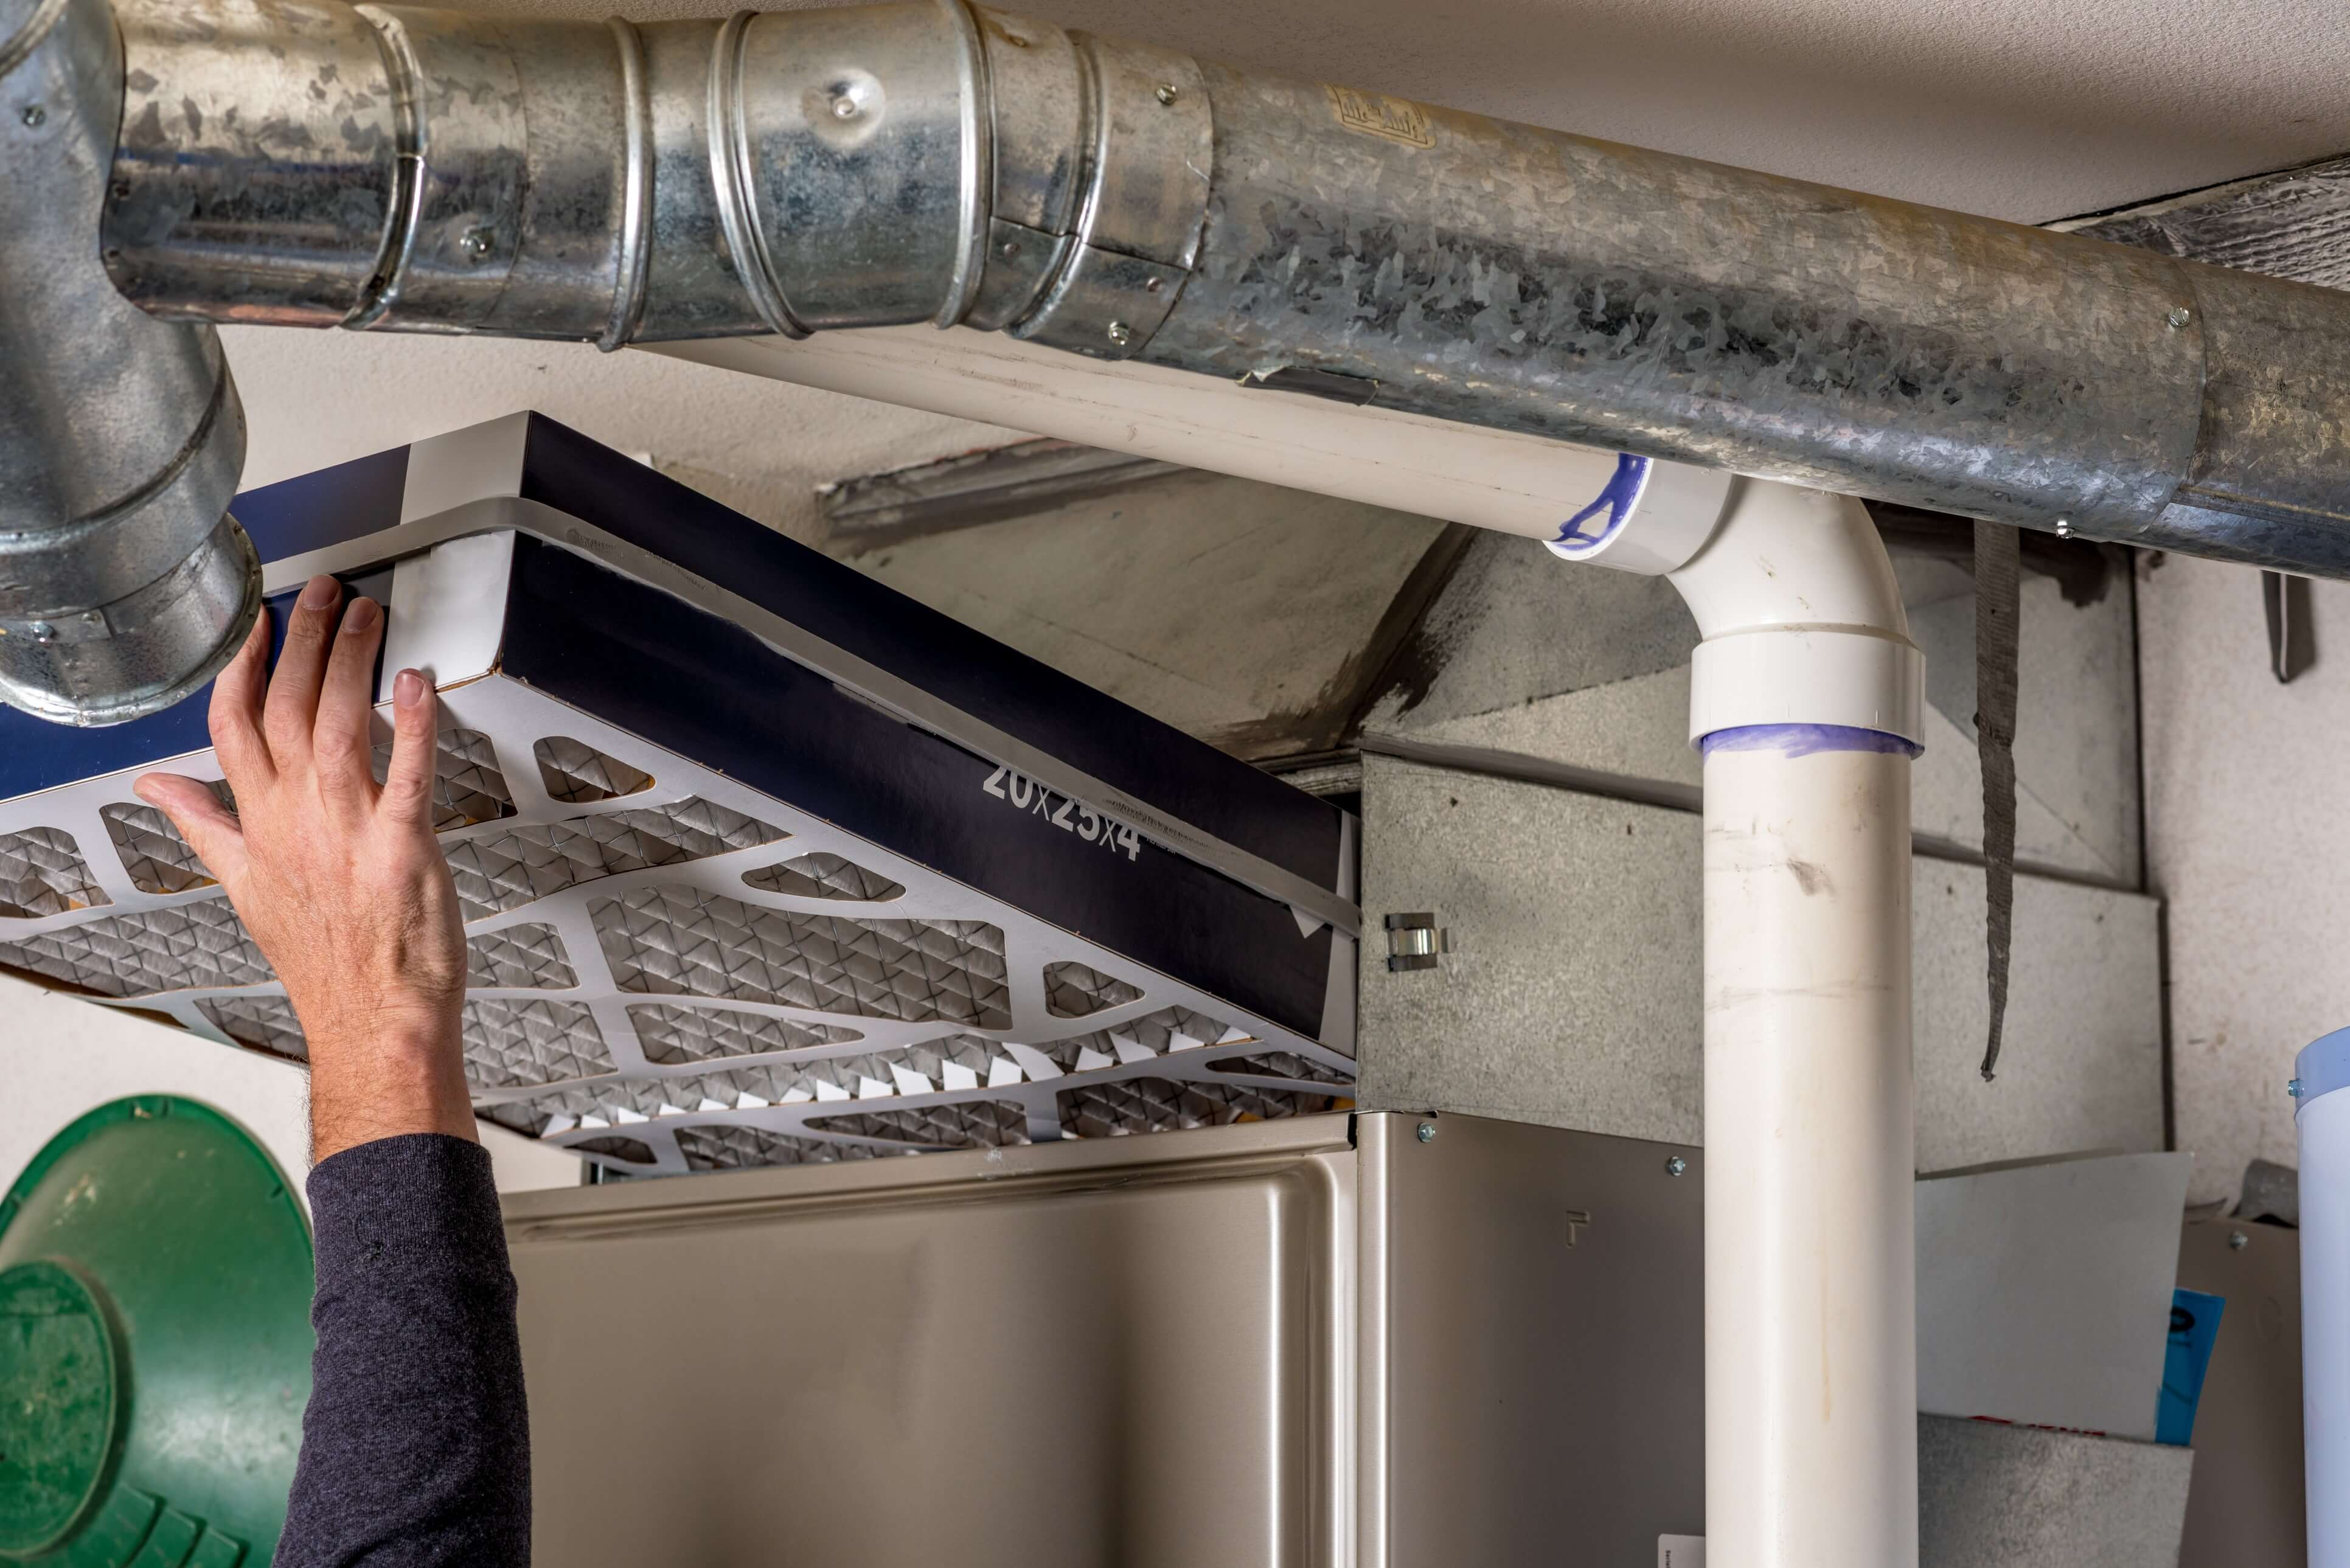 Your Furnace is Old but Still Runs. Should You Consider a Furnace Replacement?